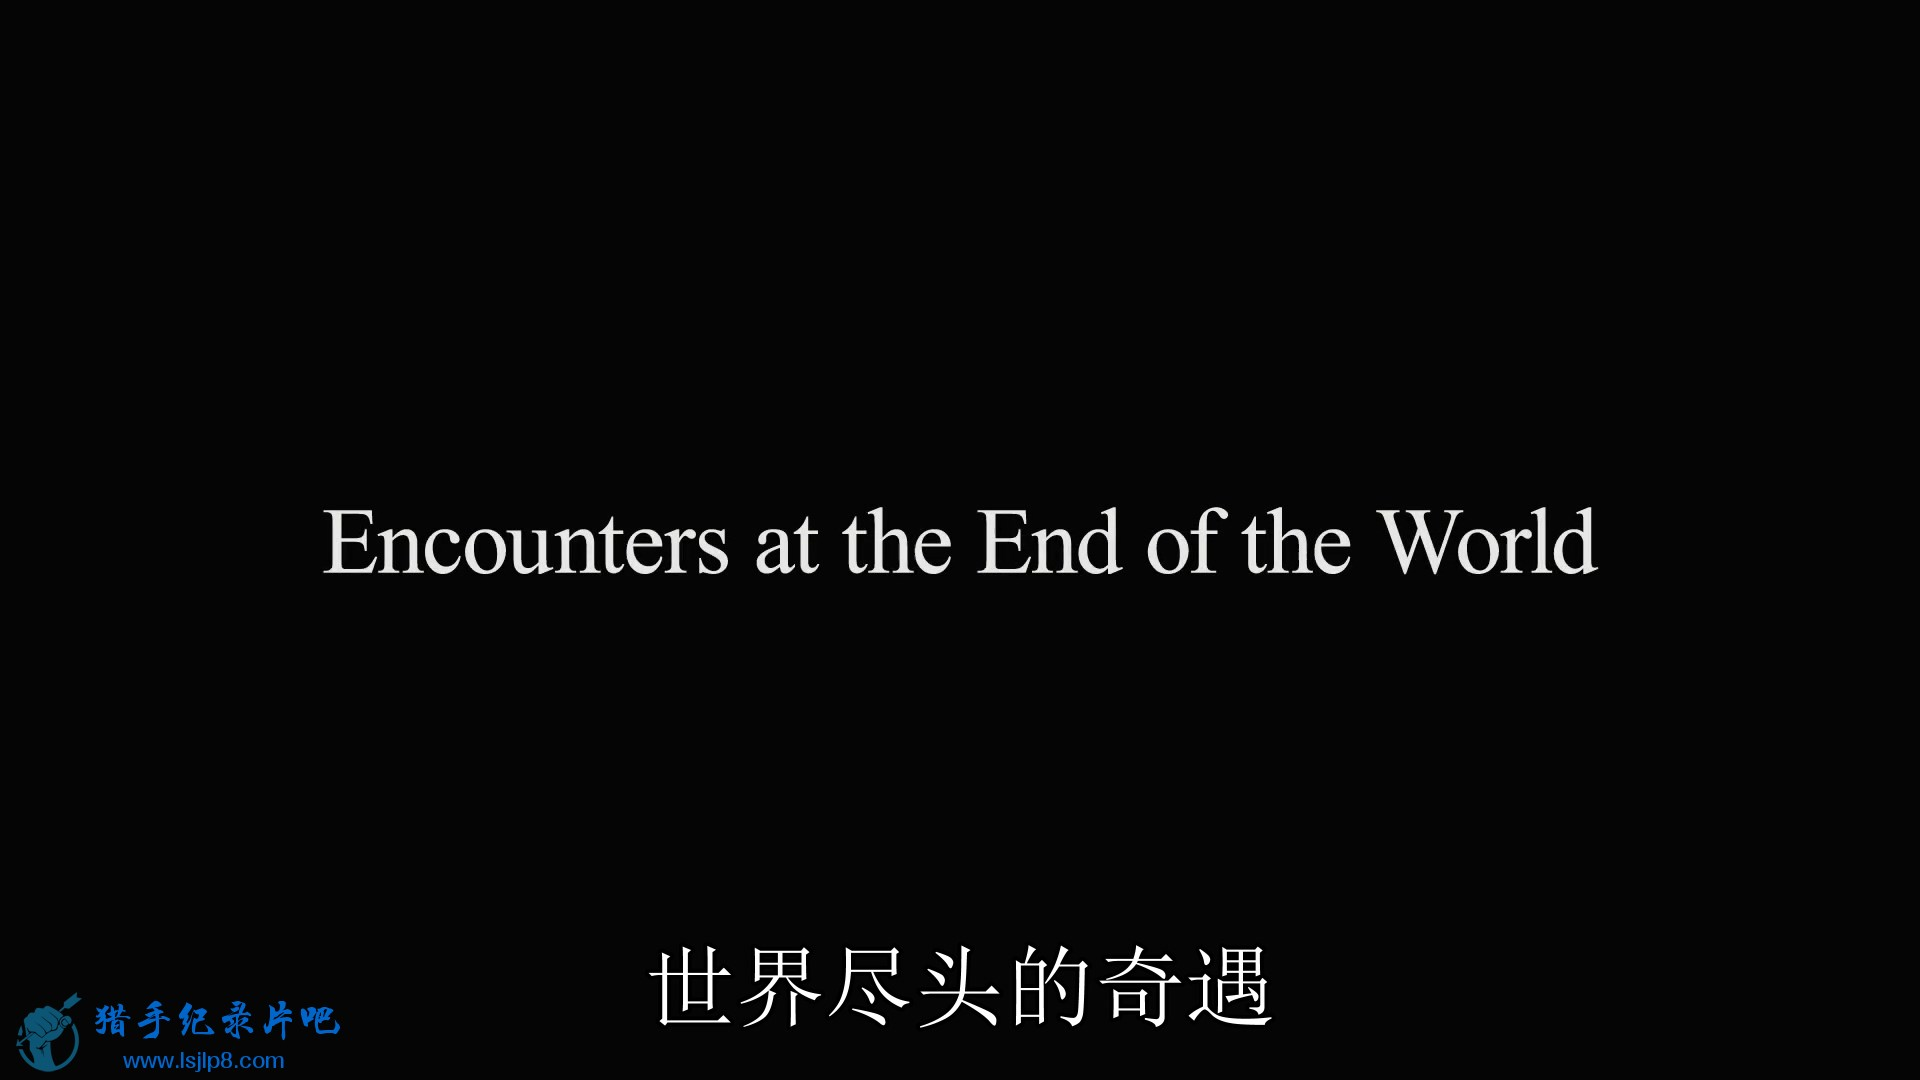 Encounters.At.The.End.Of.The.World.2007.1080p.BluRay.x264-CiNEFiLE.mkv_20191019_.jpg